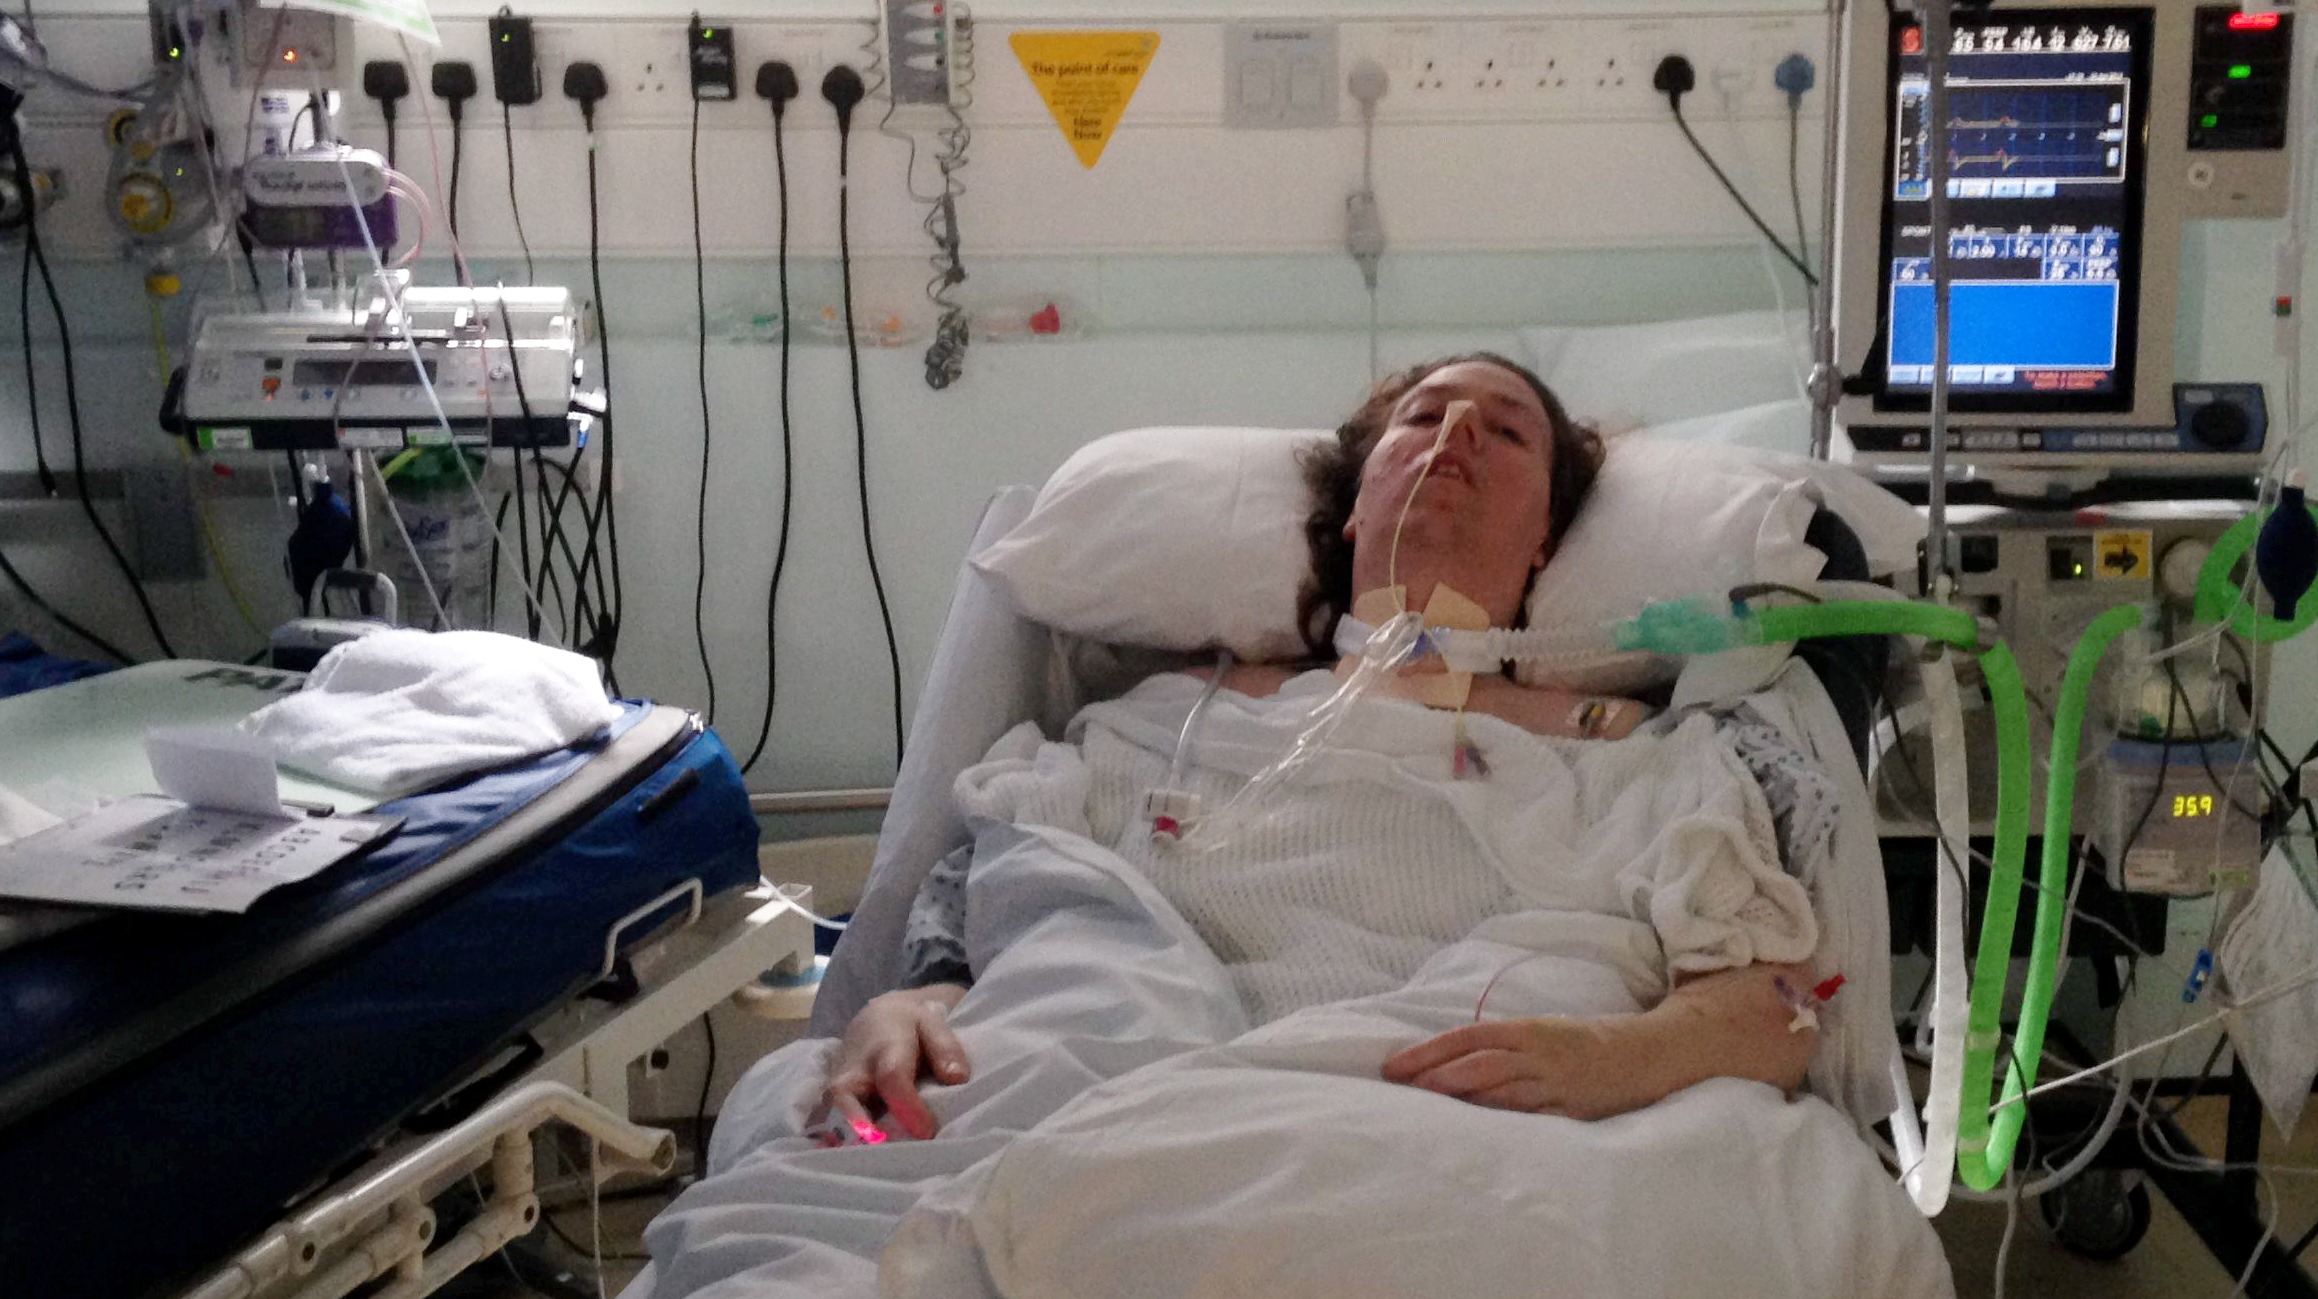 Paralysed woman in coma hears husband talk about switching ...  Paralysed woman...